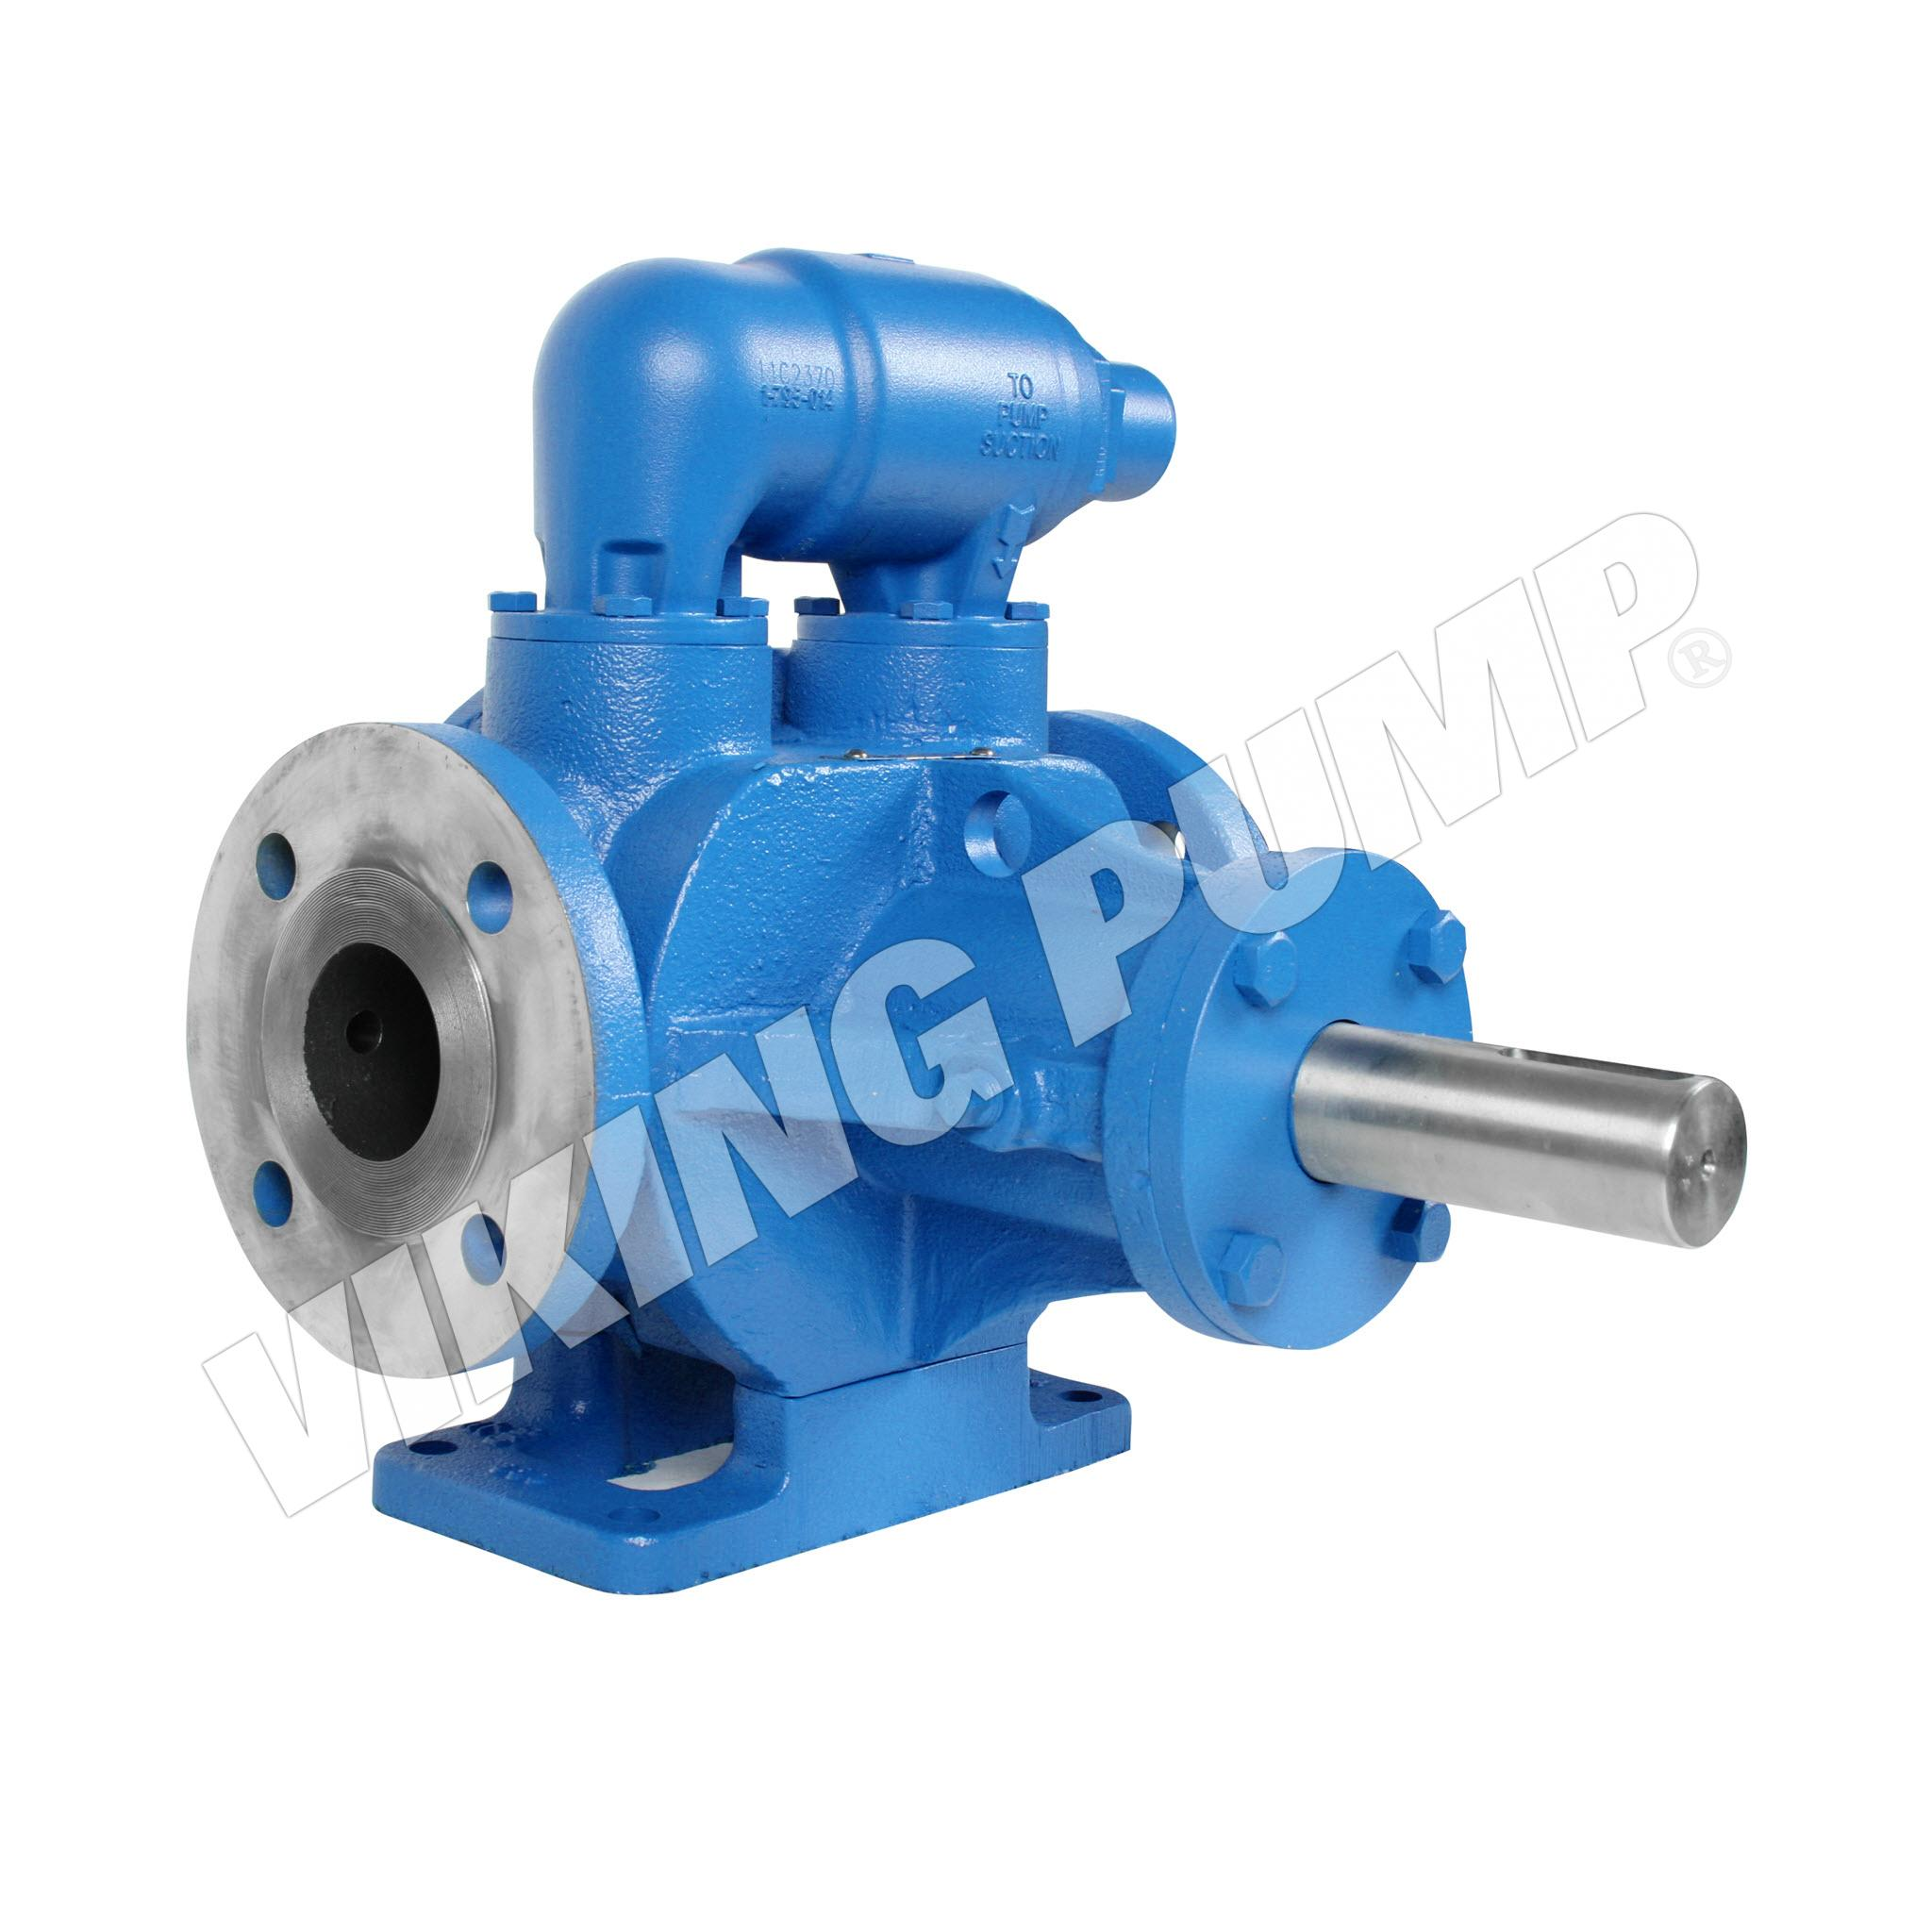 Model LVP41087, Foot Mounted, Mechanical Seal, Relief Valve Pump